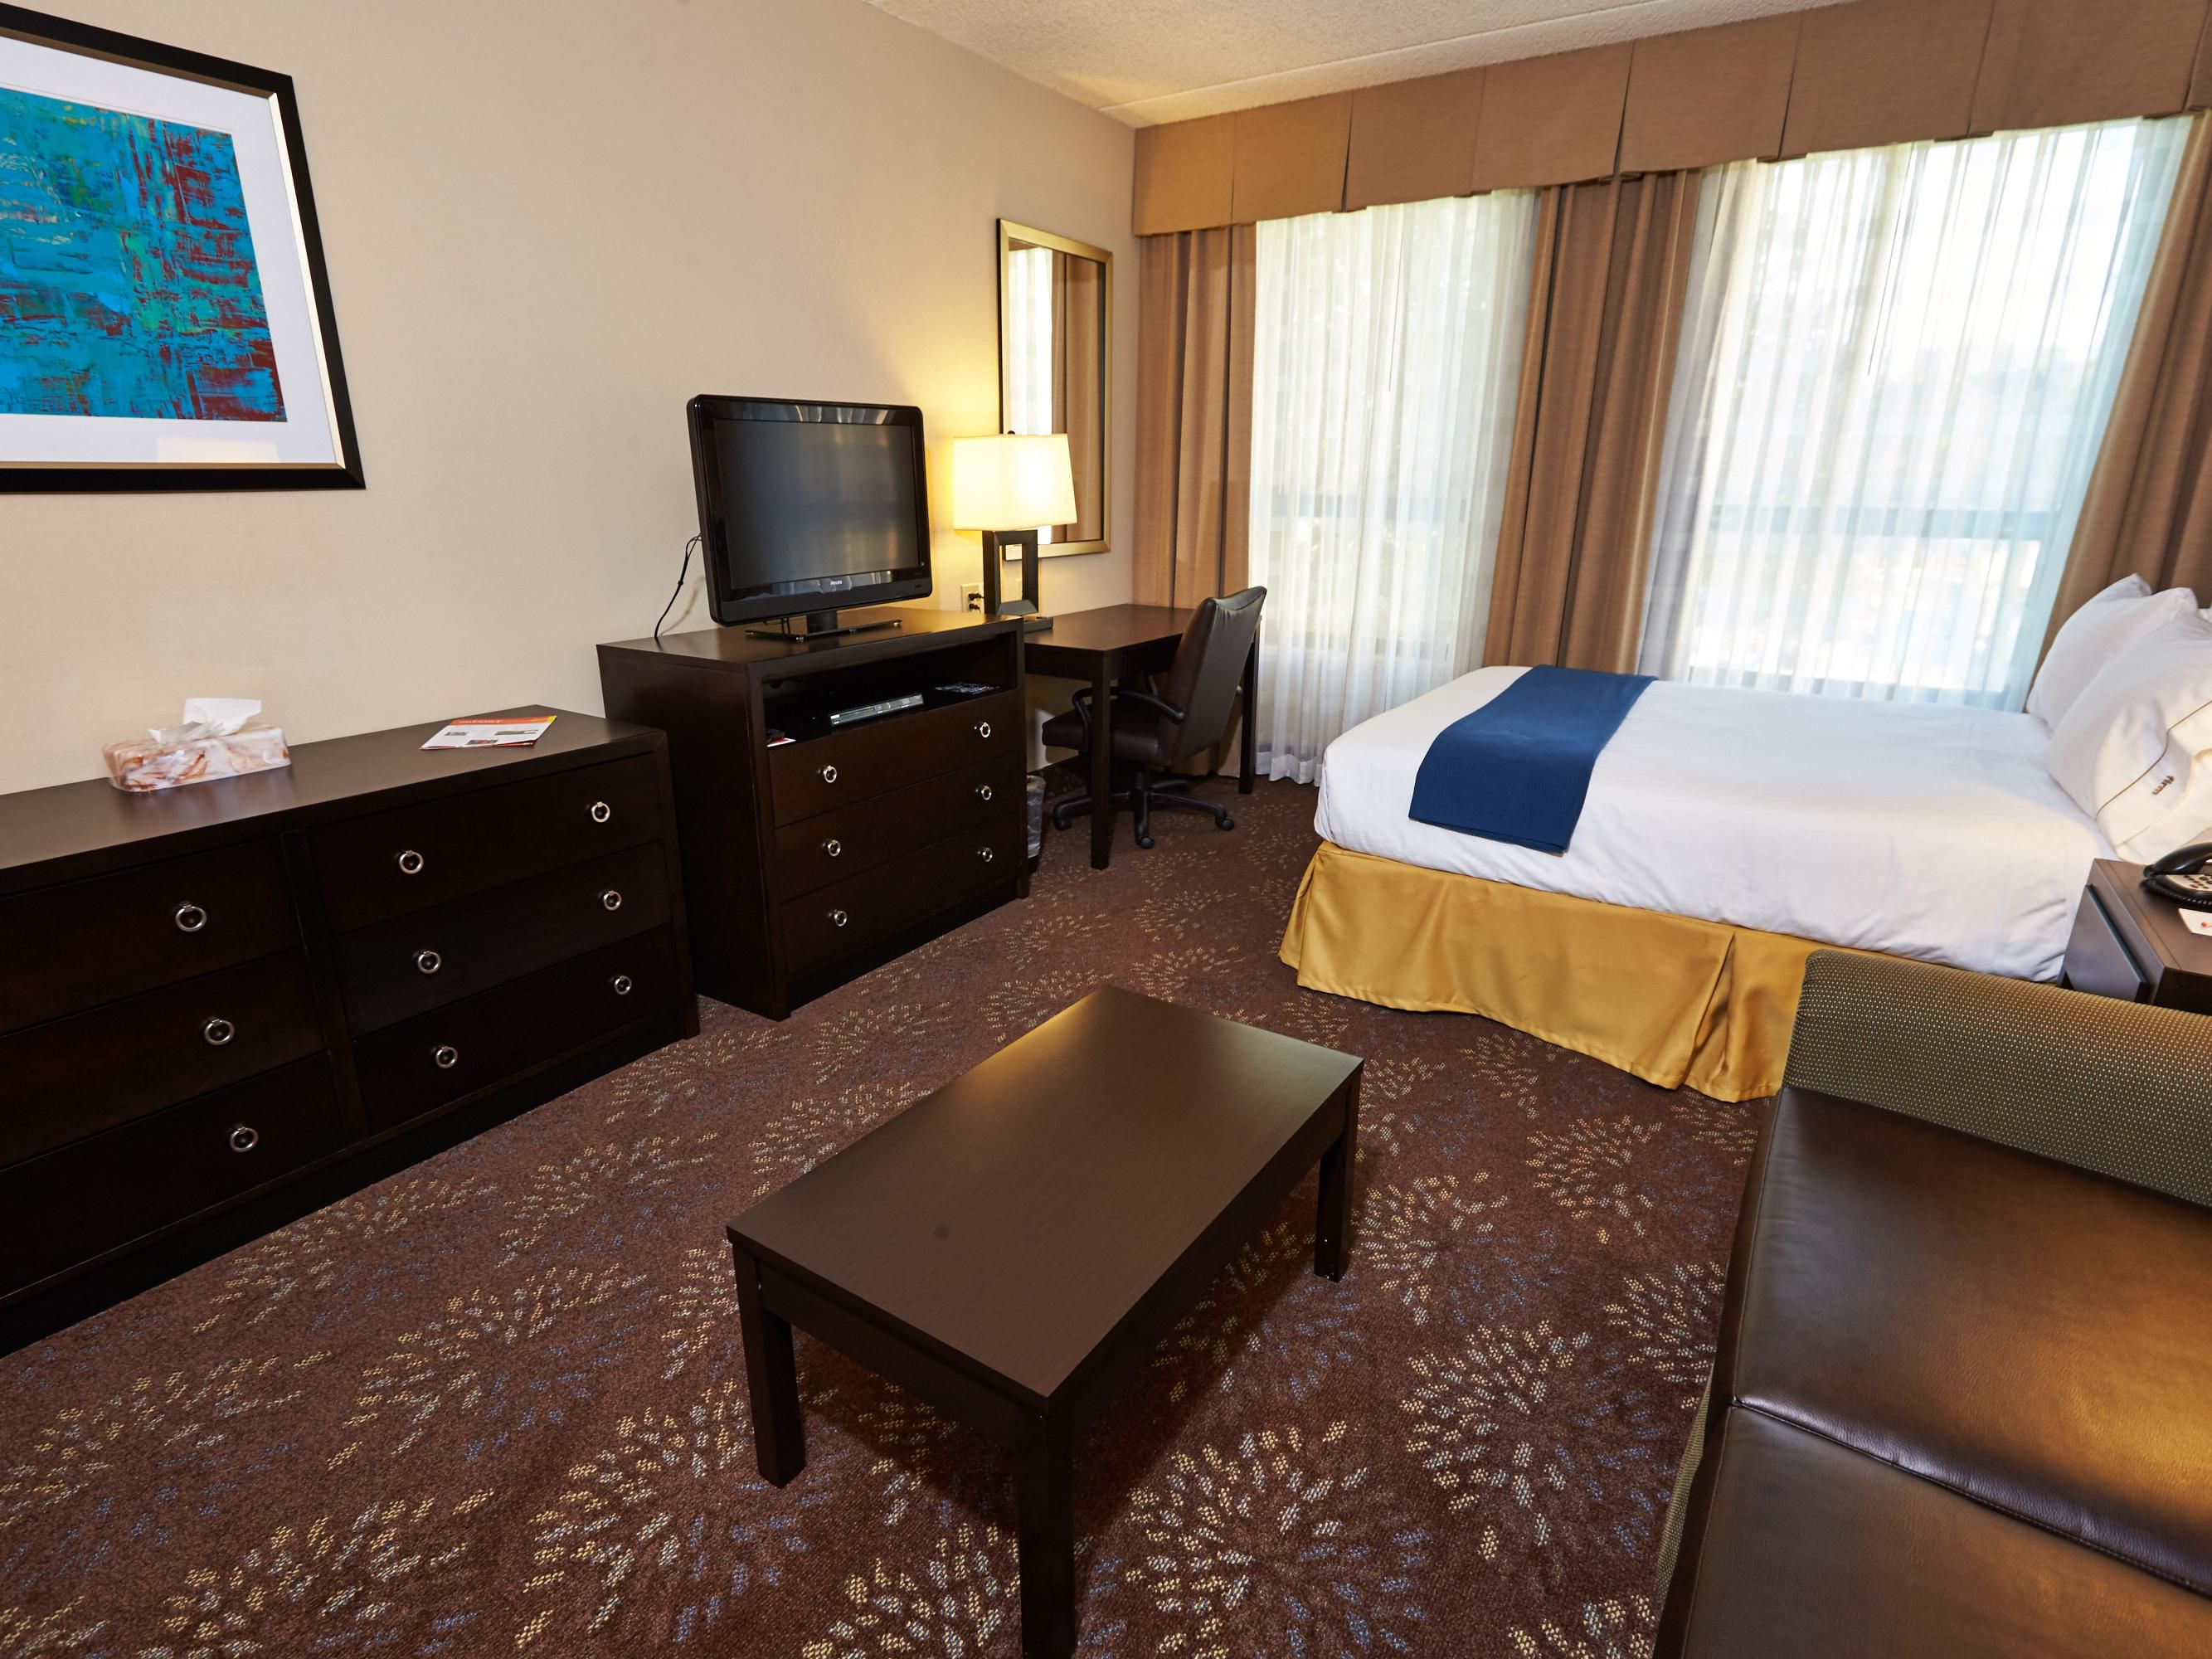 Rooms And Rates For Ihg Army Hotels Powless House At Ft